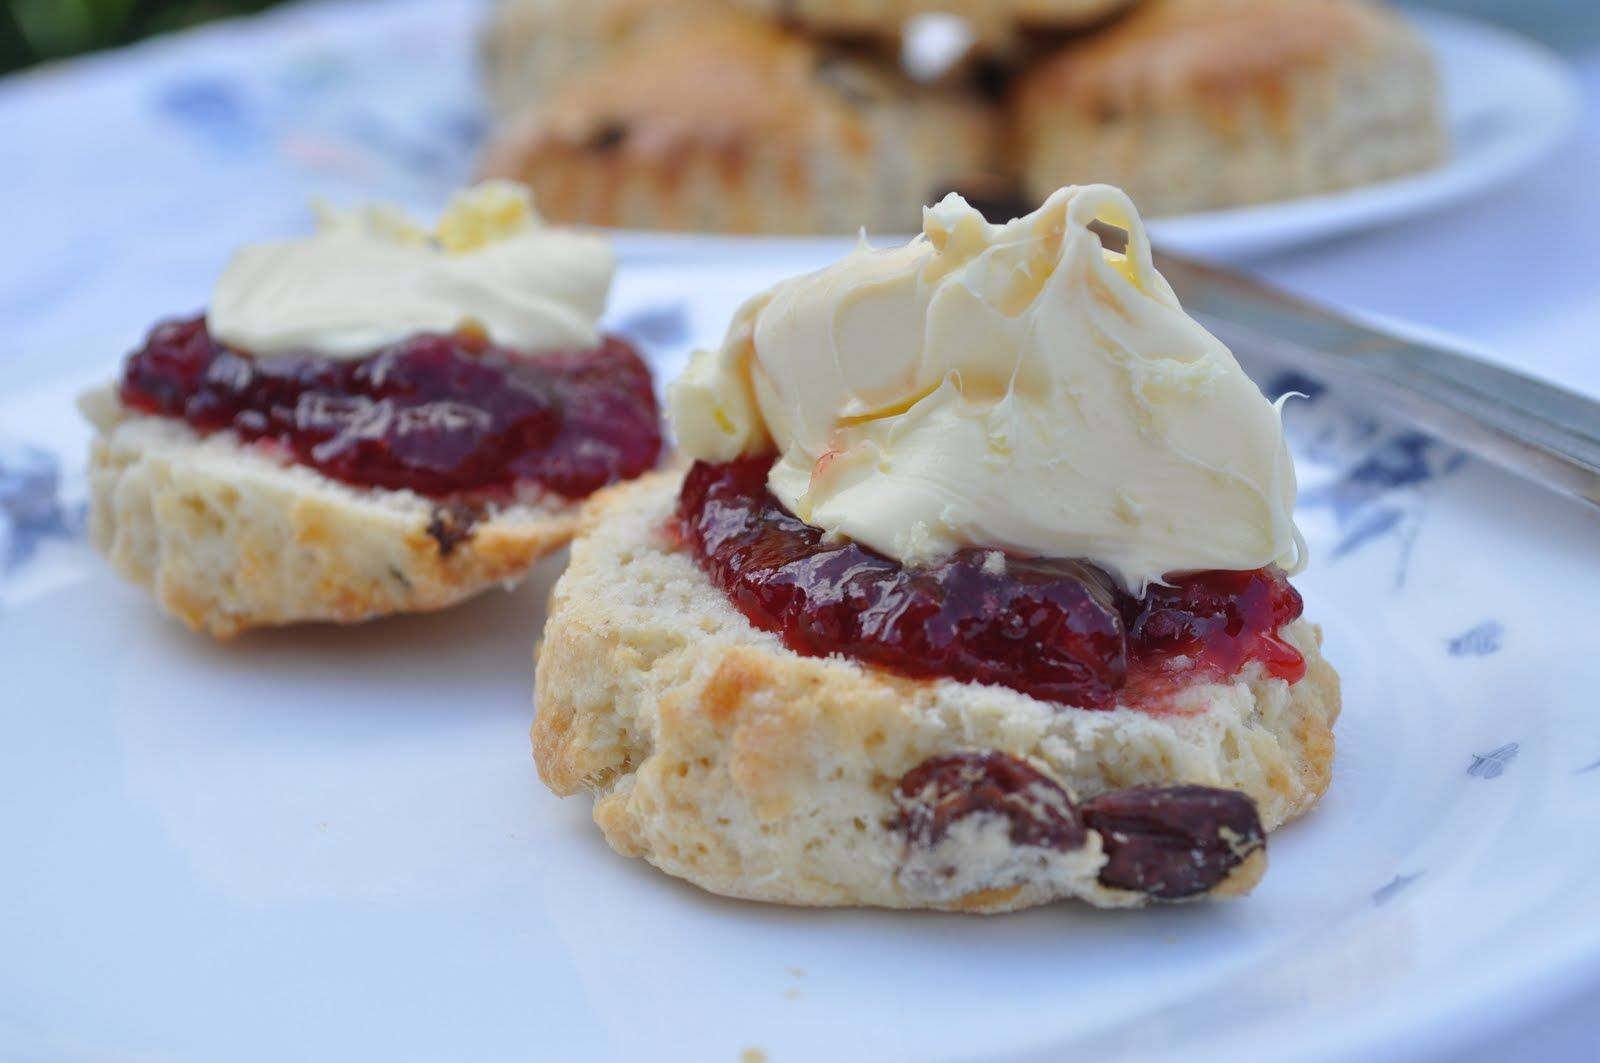 2. Have a Cream Tea in Devon - 29 Things to do in UK before You Die ... → Travel